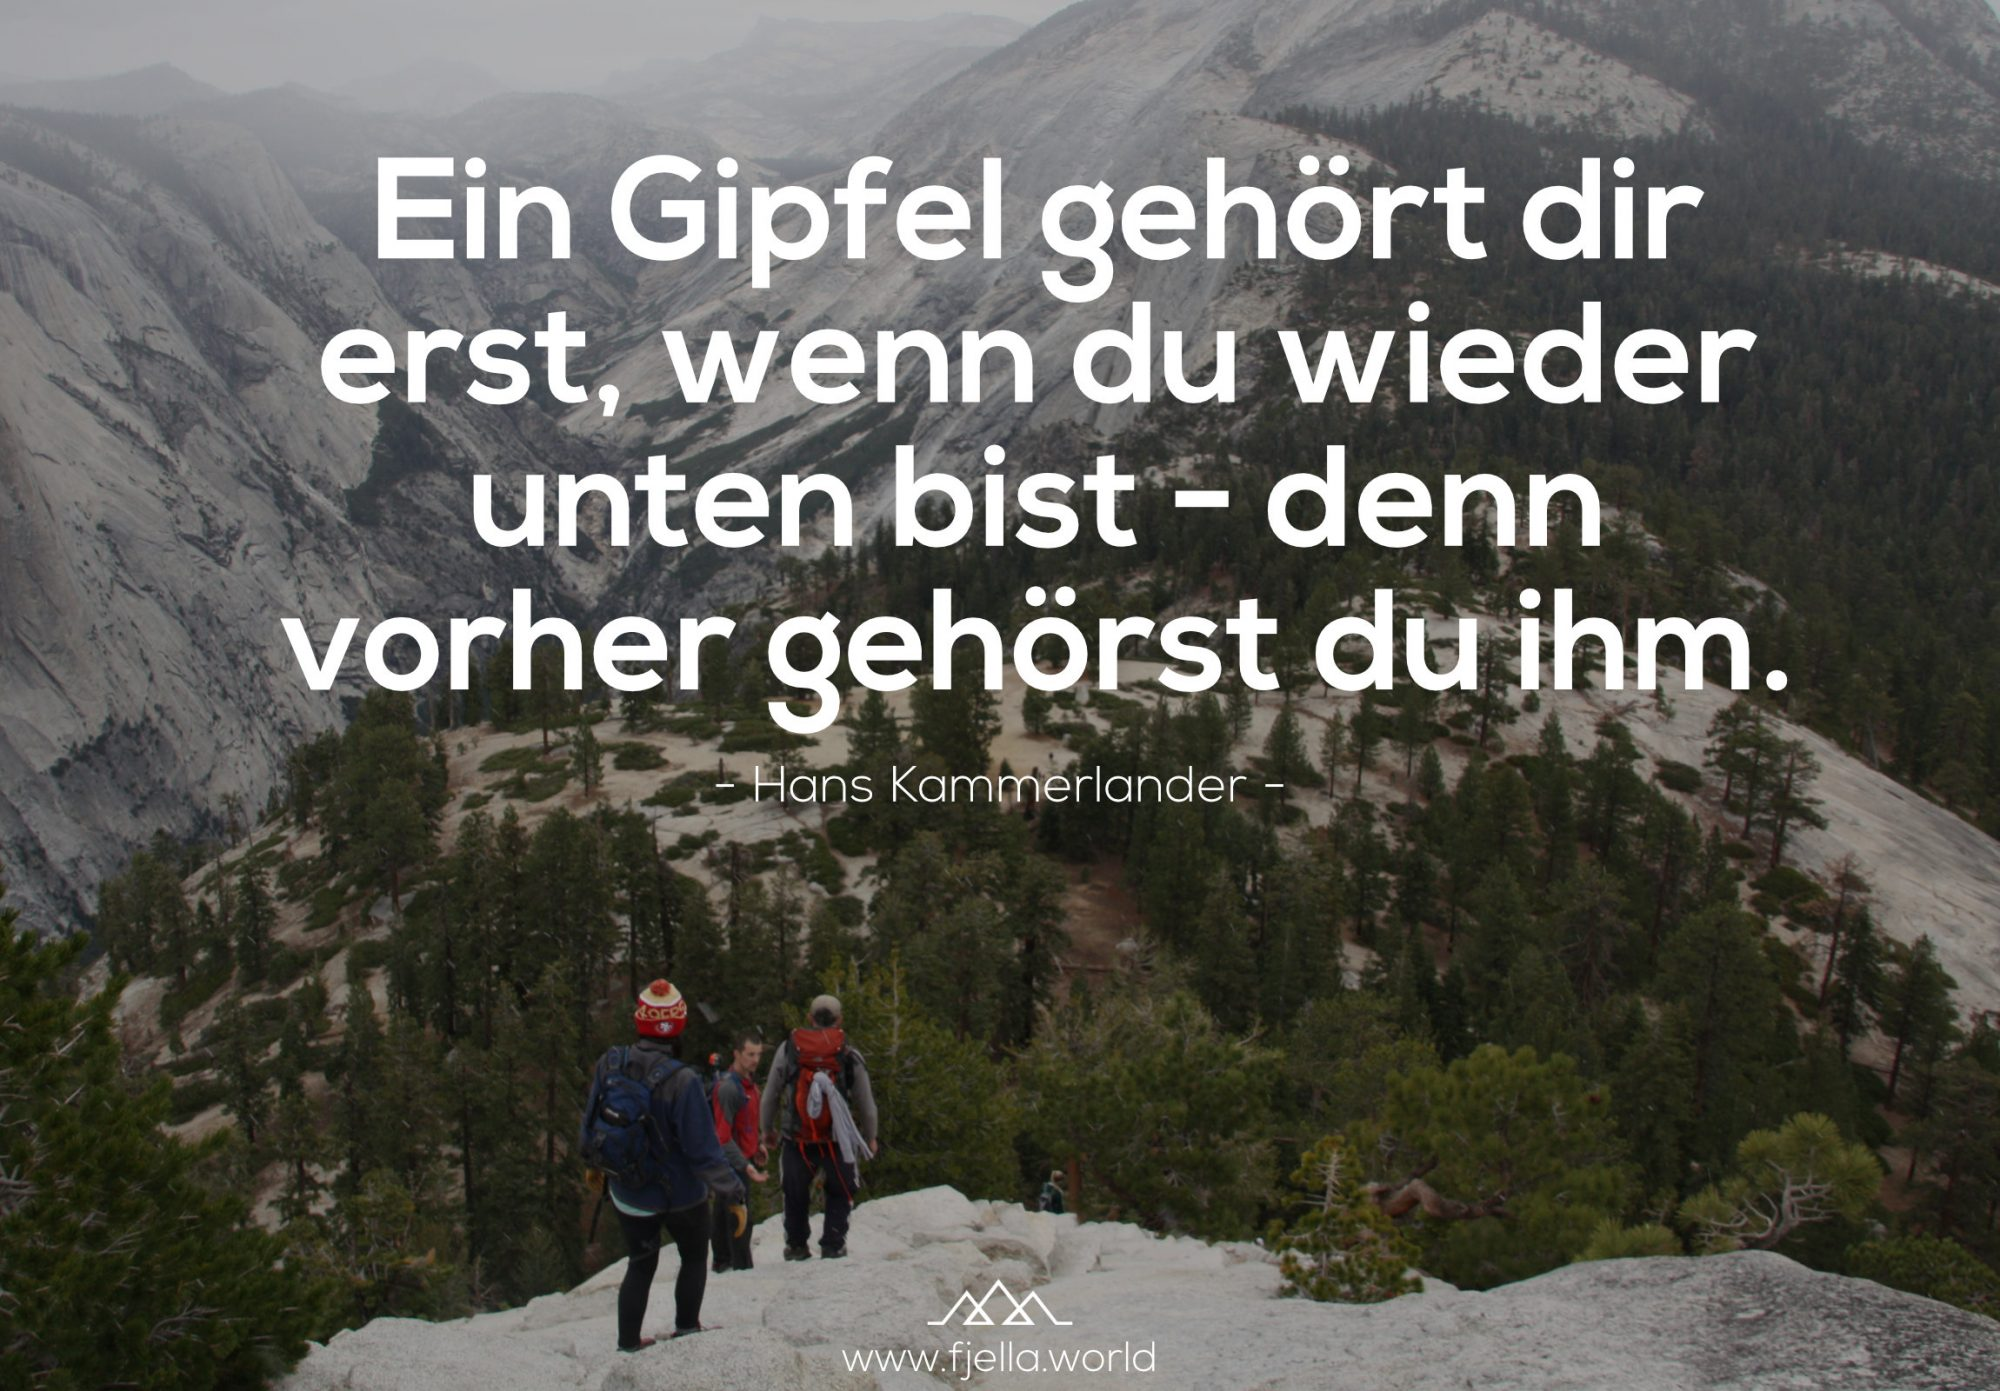 Ein Gipfel gehört dir erst, wenn du wieder unten bist - denn vorher gehörst du ihm. Hans Kammerlander, Bergspruch, Wanderzitat, Inspiration, Motivation, Zitat, Spruch, Reisezitate, Motivation